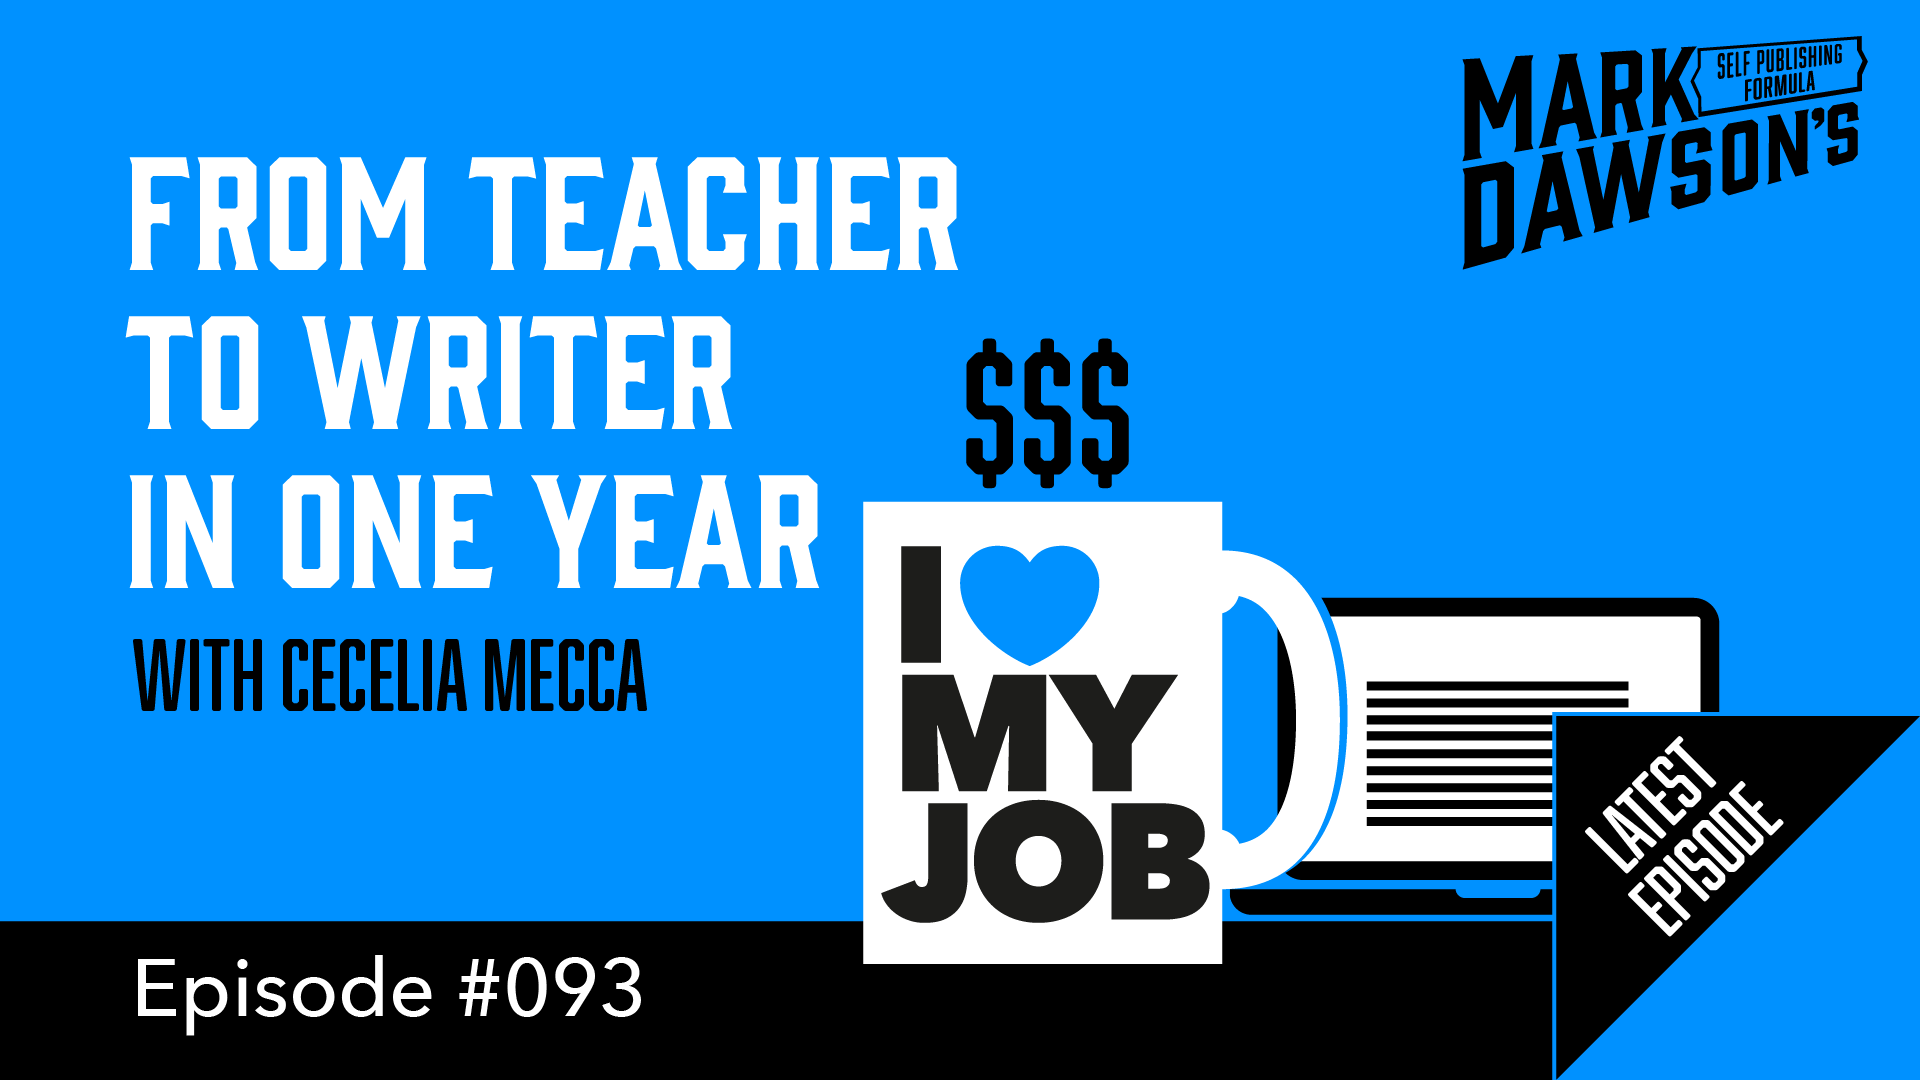 From Teacher to Writer in One Year – with Cecelia Mecca